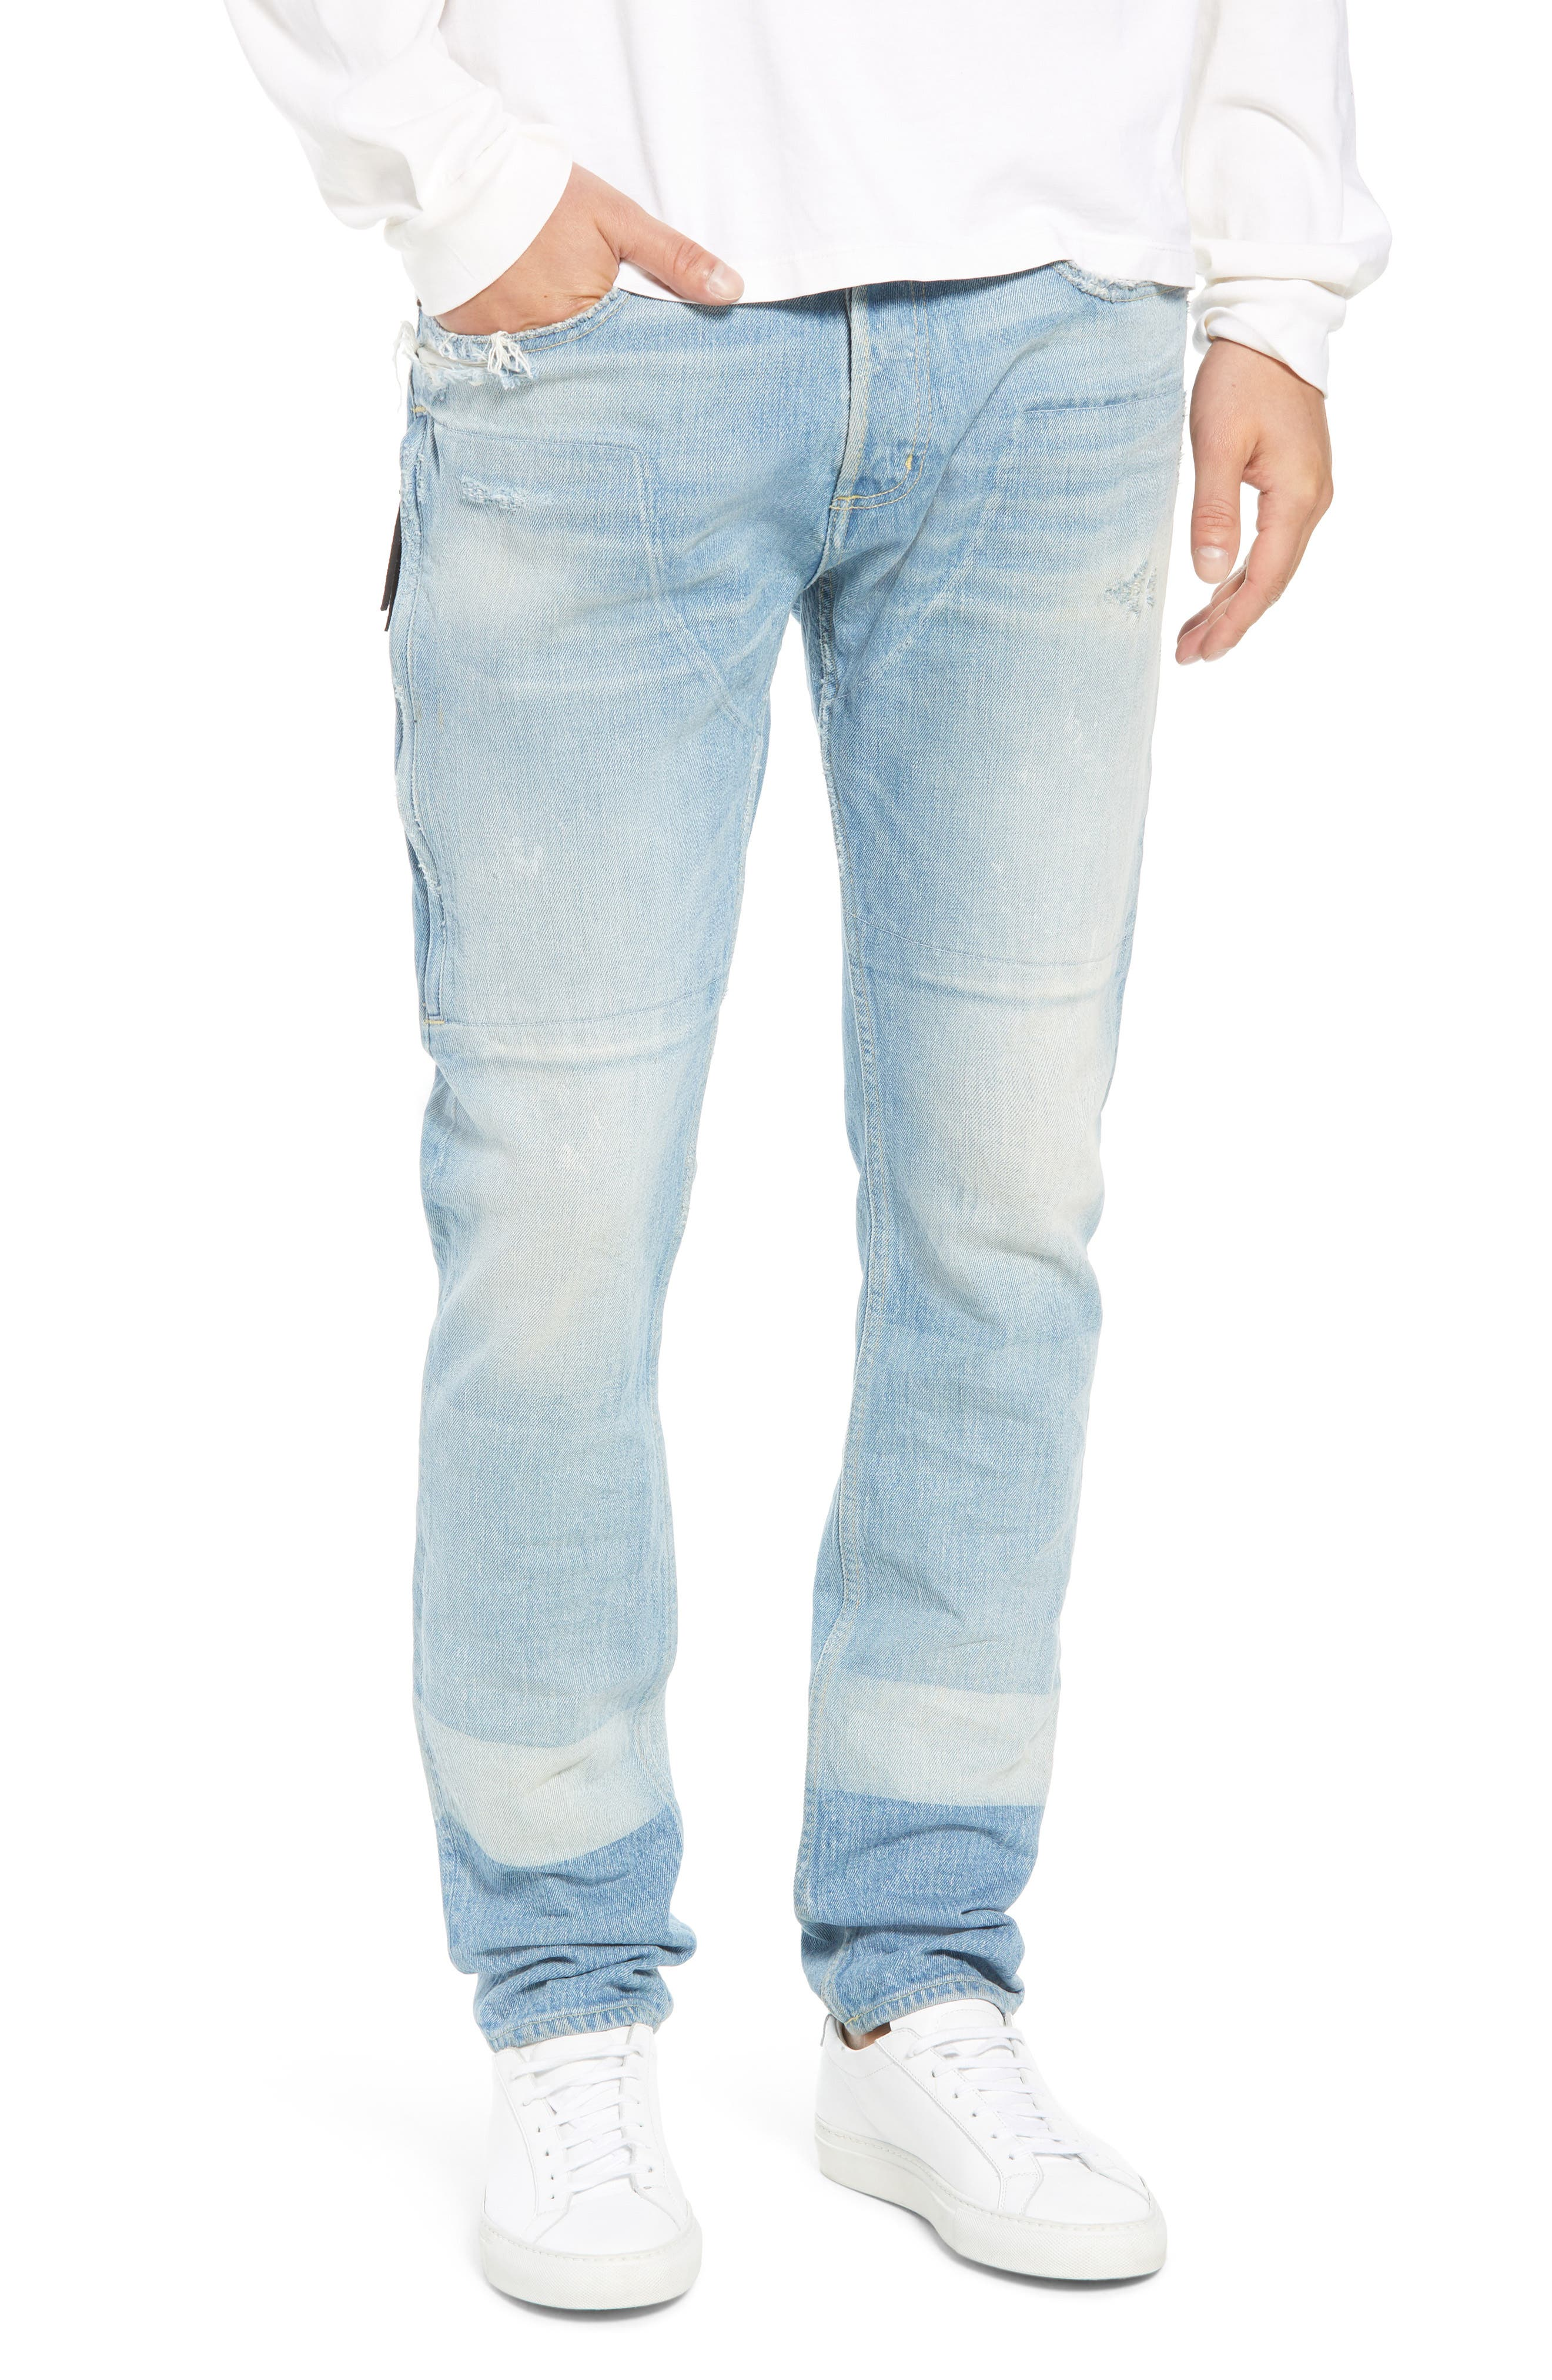 MR. COMPLETELY Emirate Slim Fit Jeans in Blue Strip